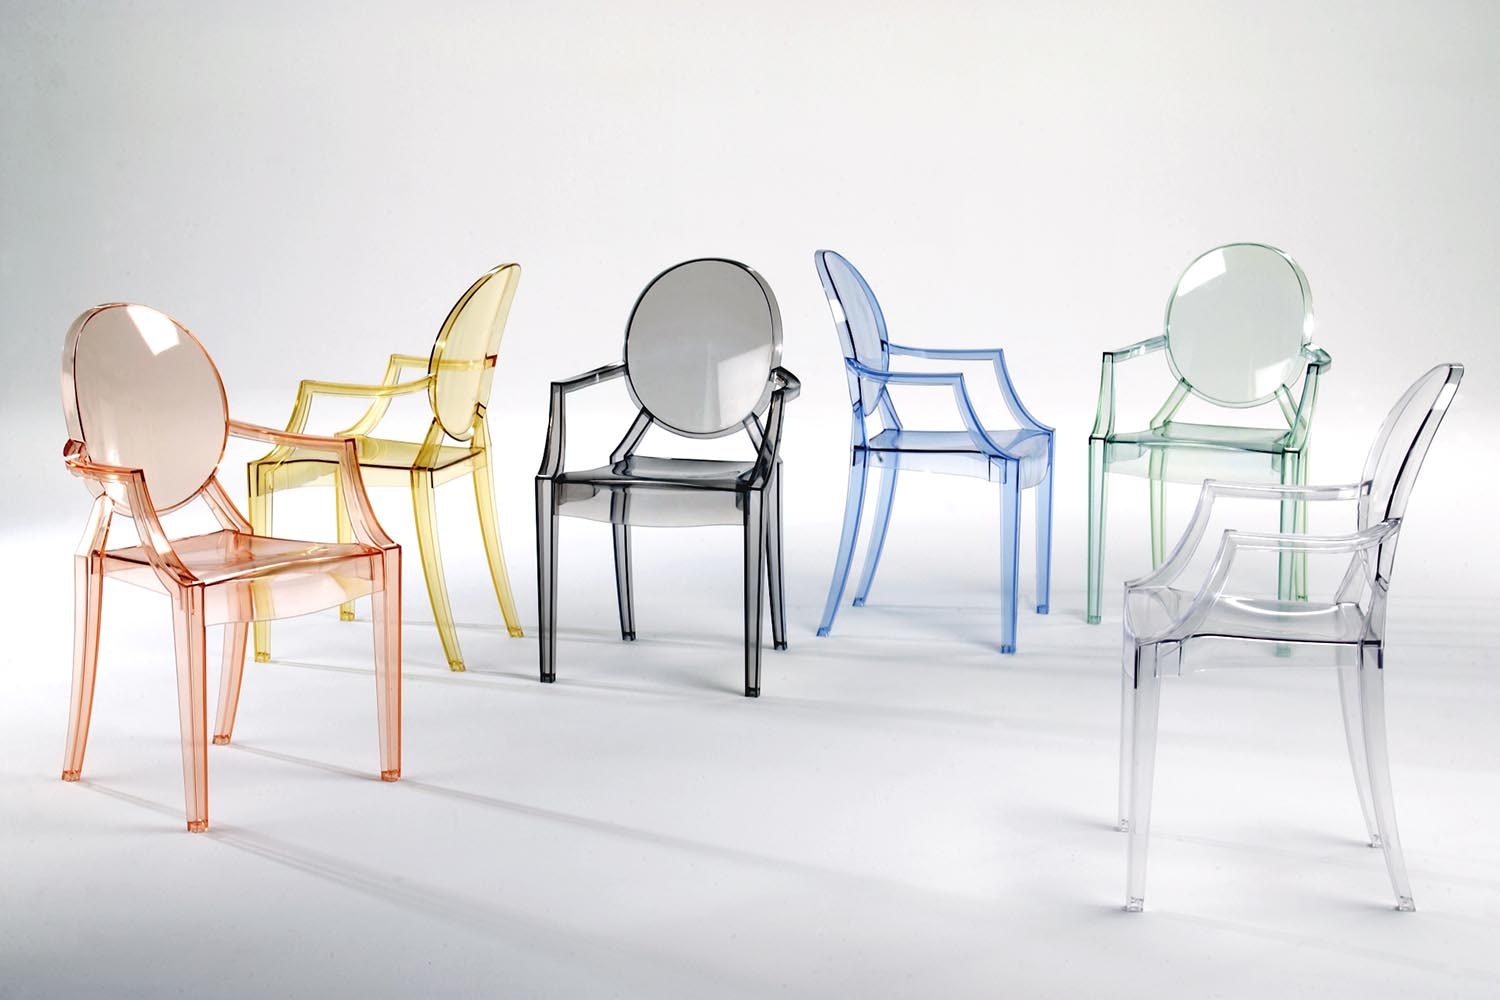 louis ghost chair with arms by philippe starck for kartell | space